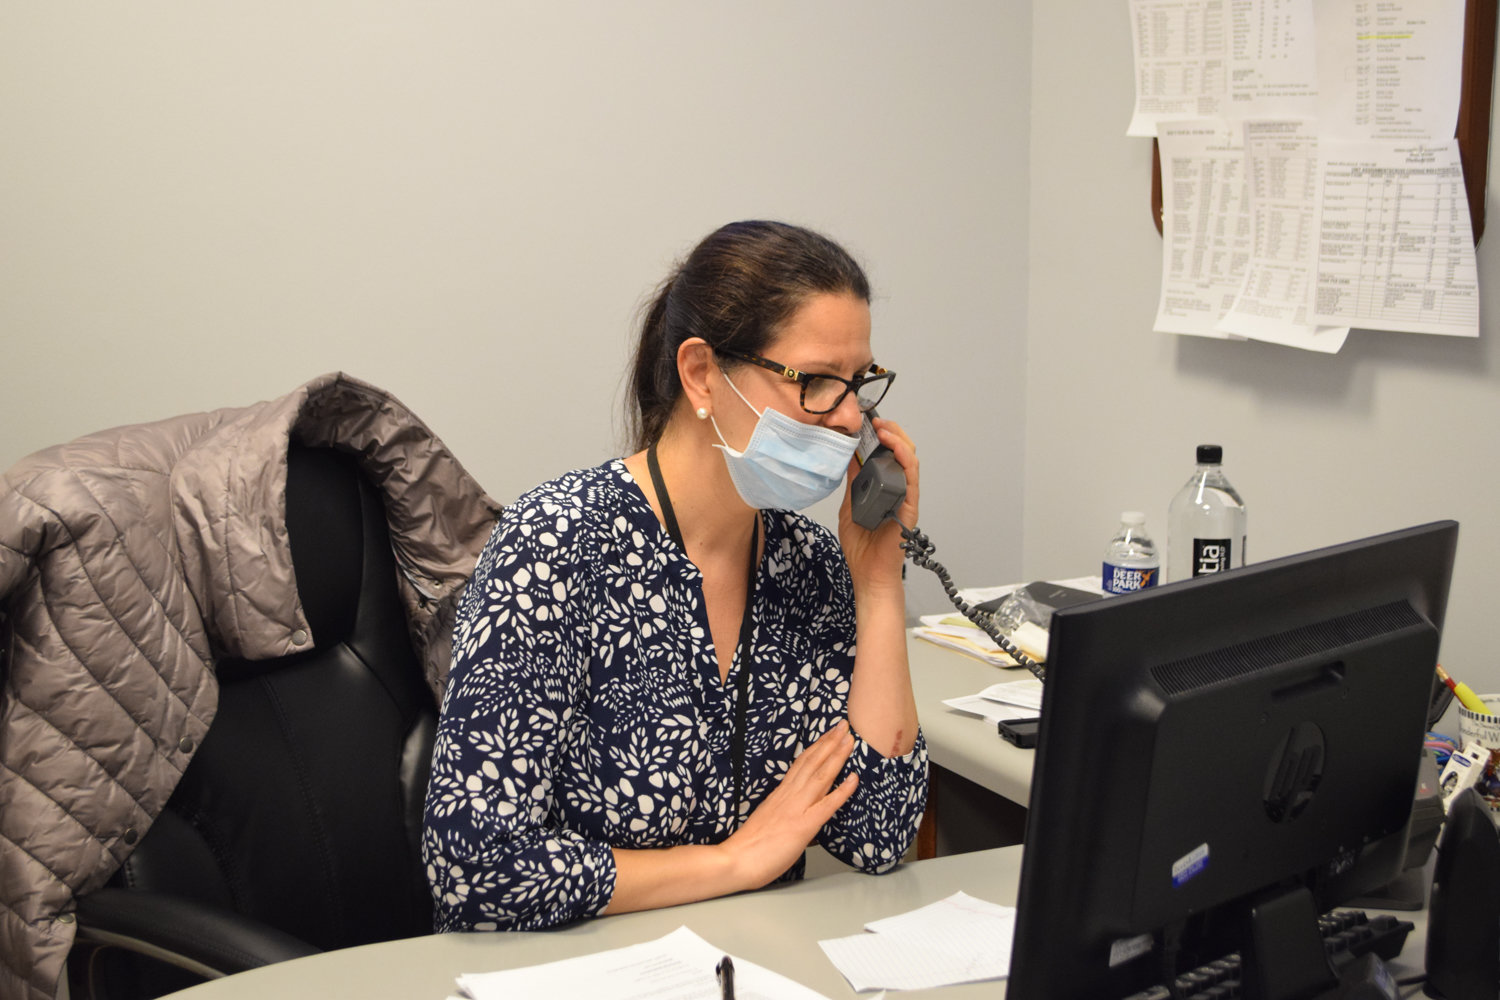 Evangeline Anastasiou, social services supervisor at the Hebrew Home at Riverdale, wears personal protective equipment at her desk. Since the advent of the coronavirus pandemic, the Hebrew Home has lost 25 residents from confirmed or suspected complications related to COVID-19.